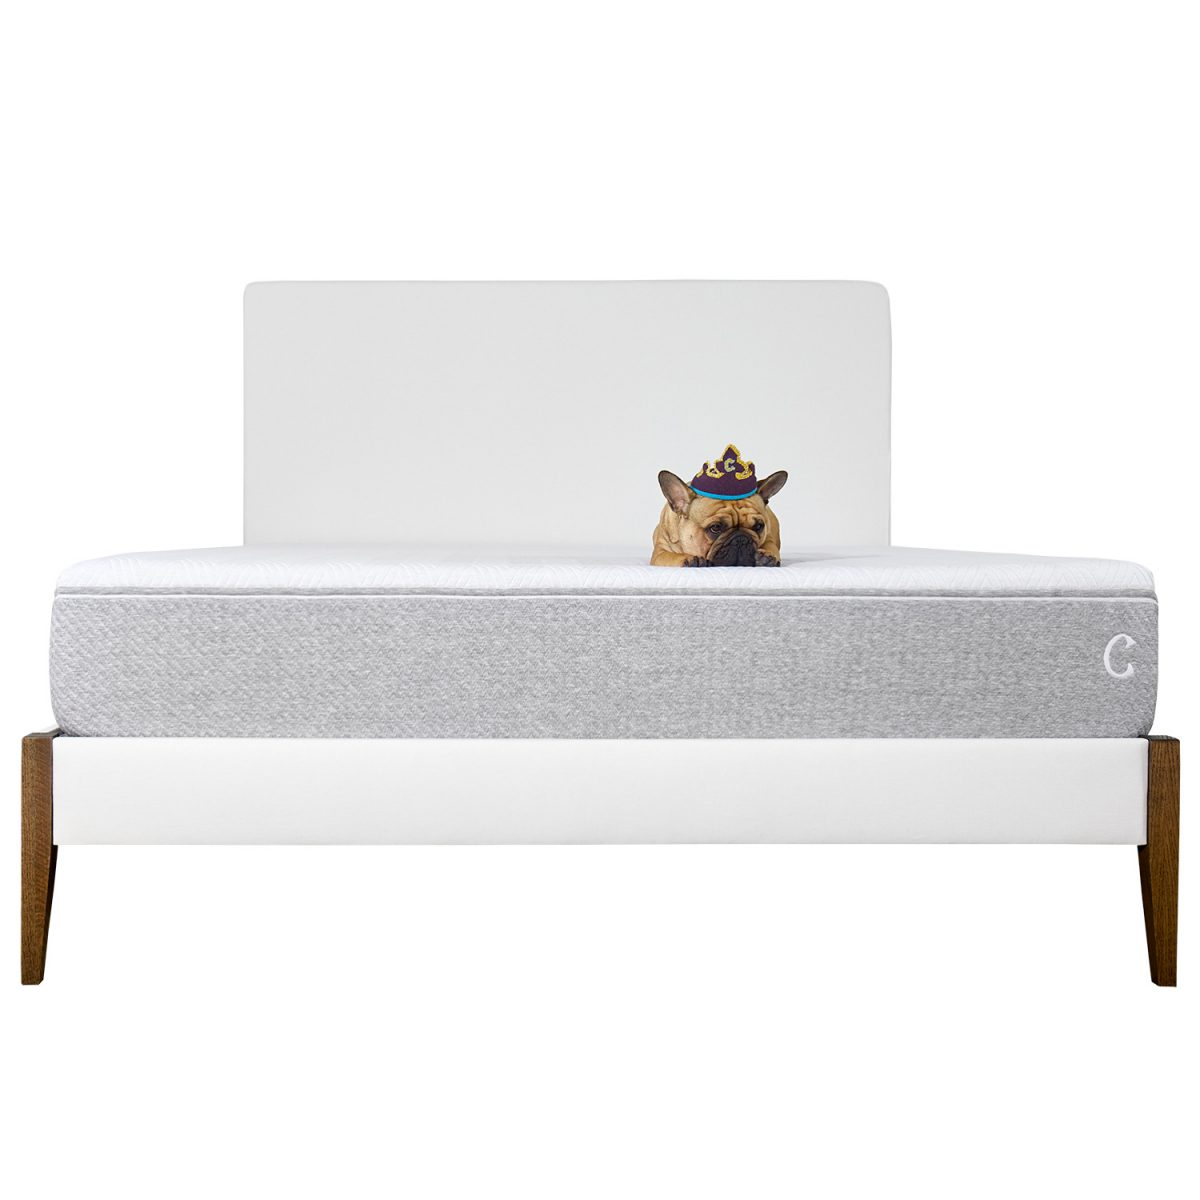 E-commerce product photography of Coley Home King Bed